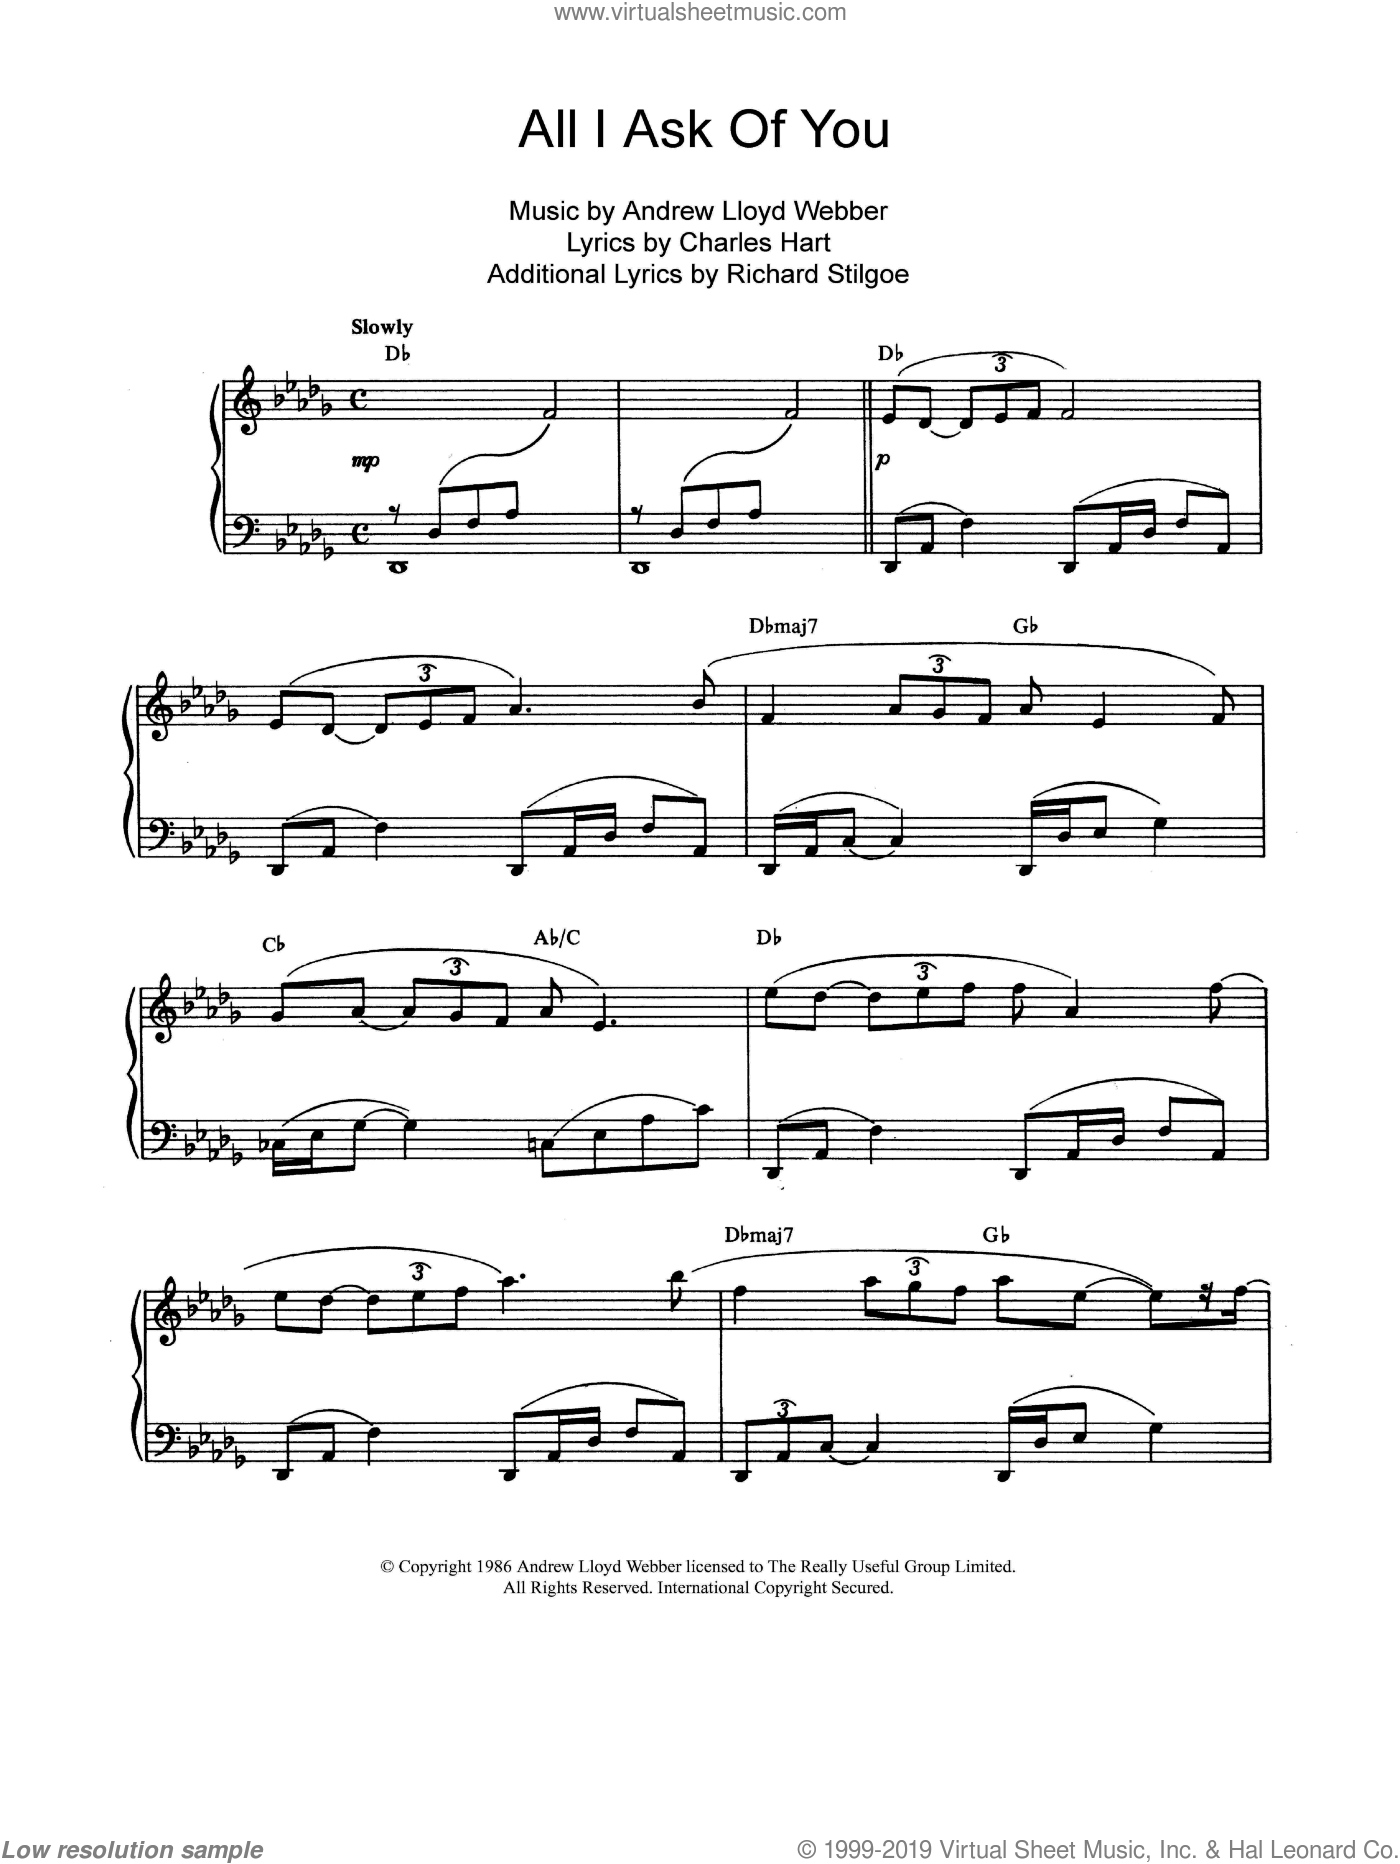 All I Ask Of You sheet music for piano solo by Richard Stilgoe